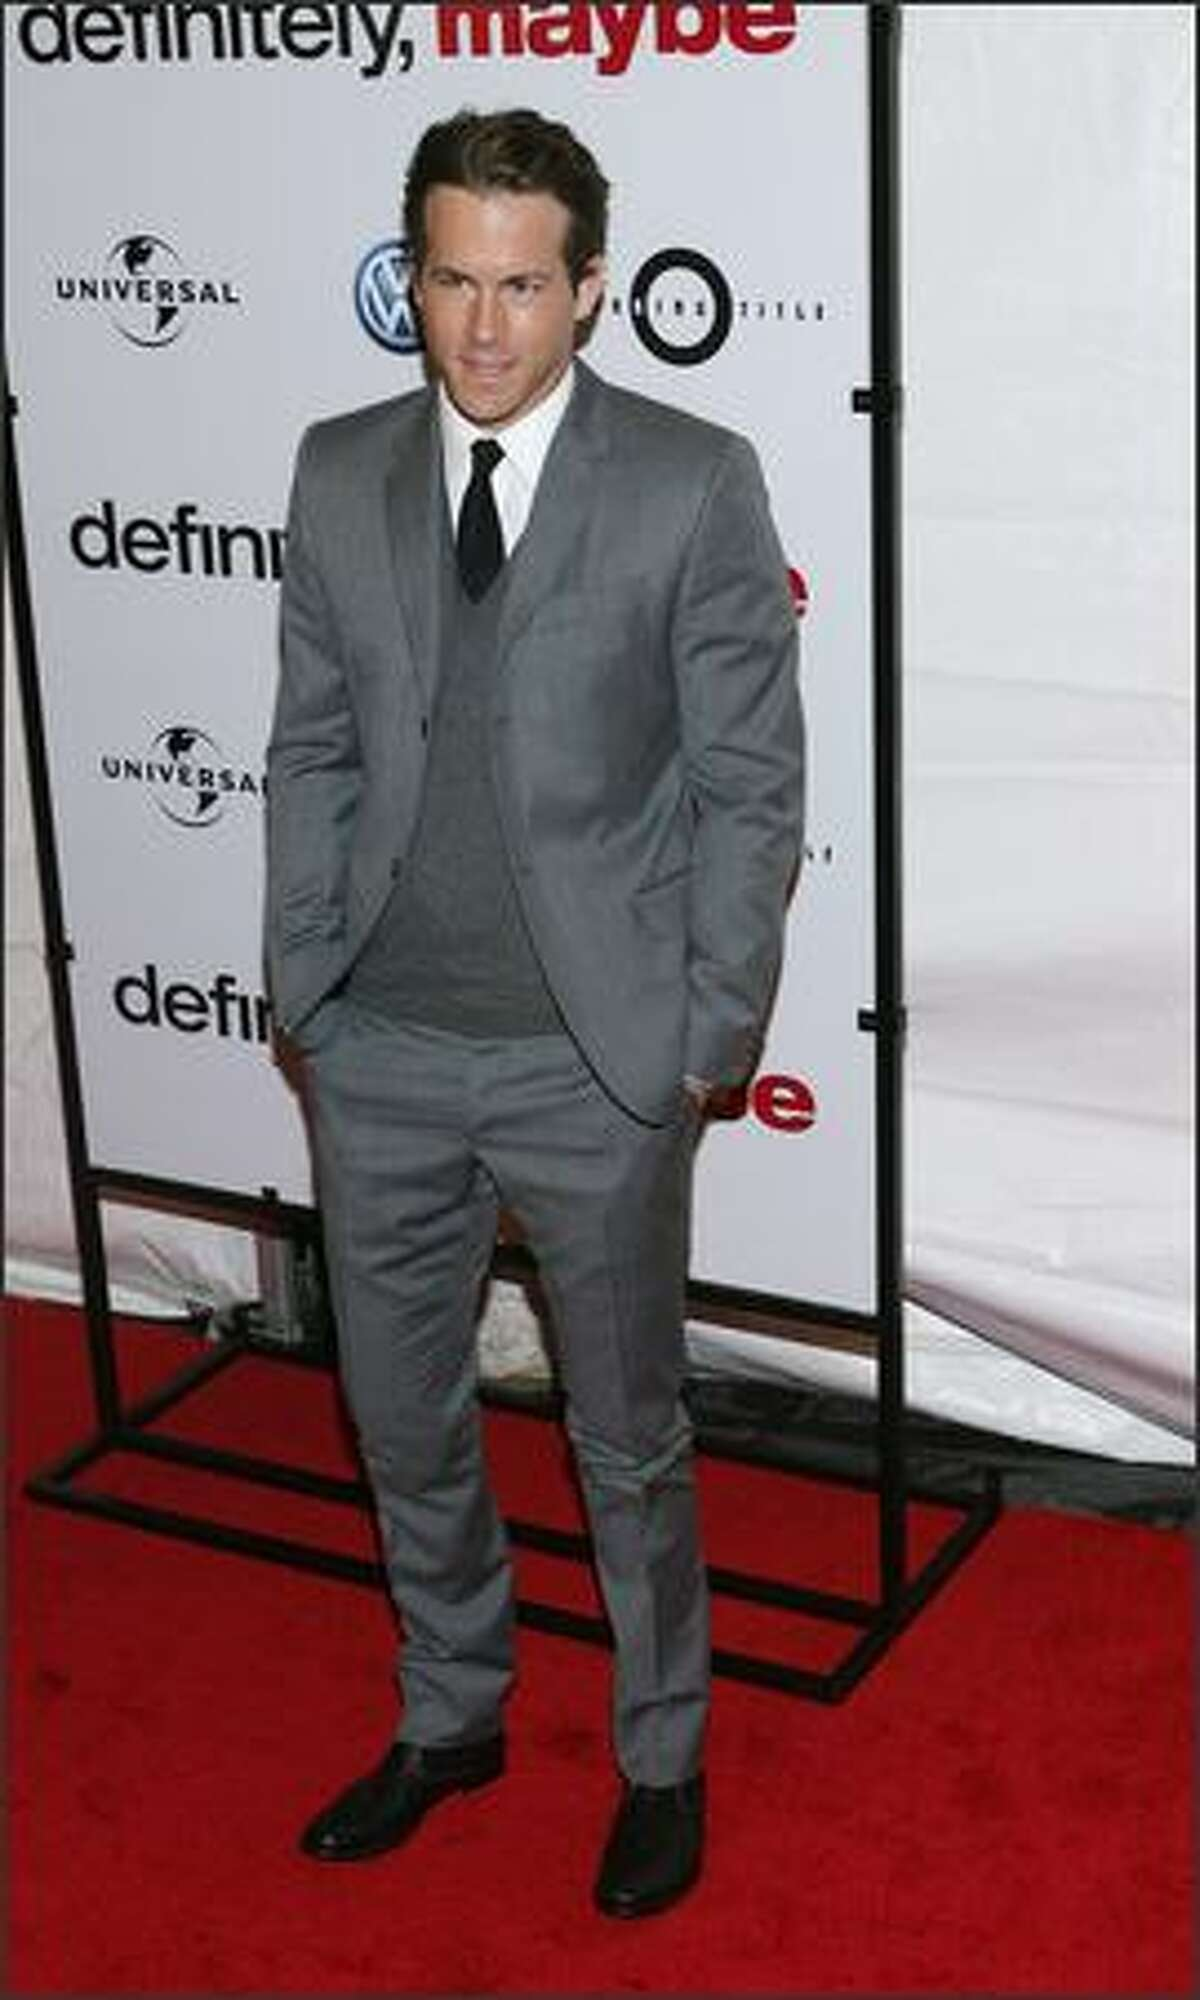 Actor Ryan Reynolds attends the premiere of